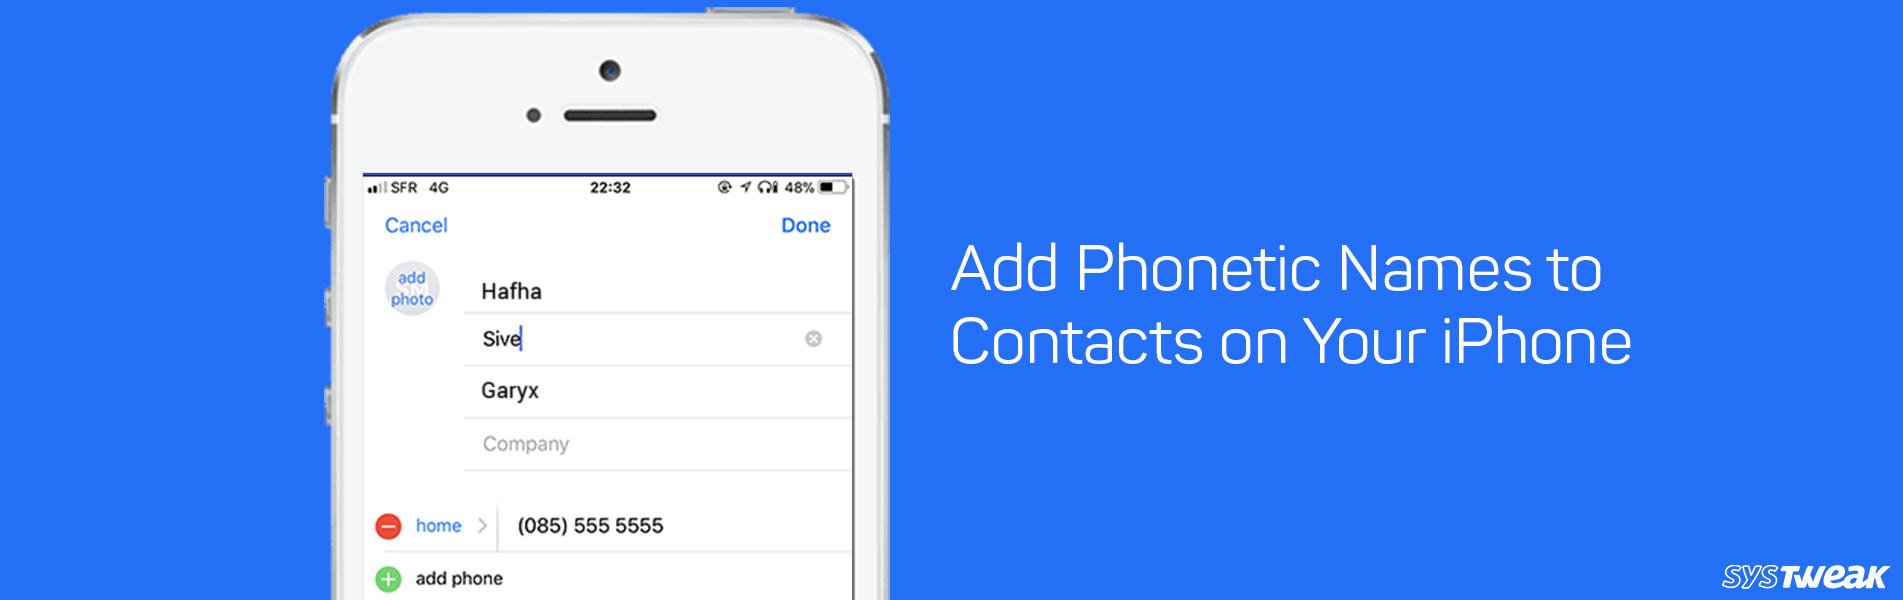 How To Add Phonetic Names to Contacts on Your iPhone